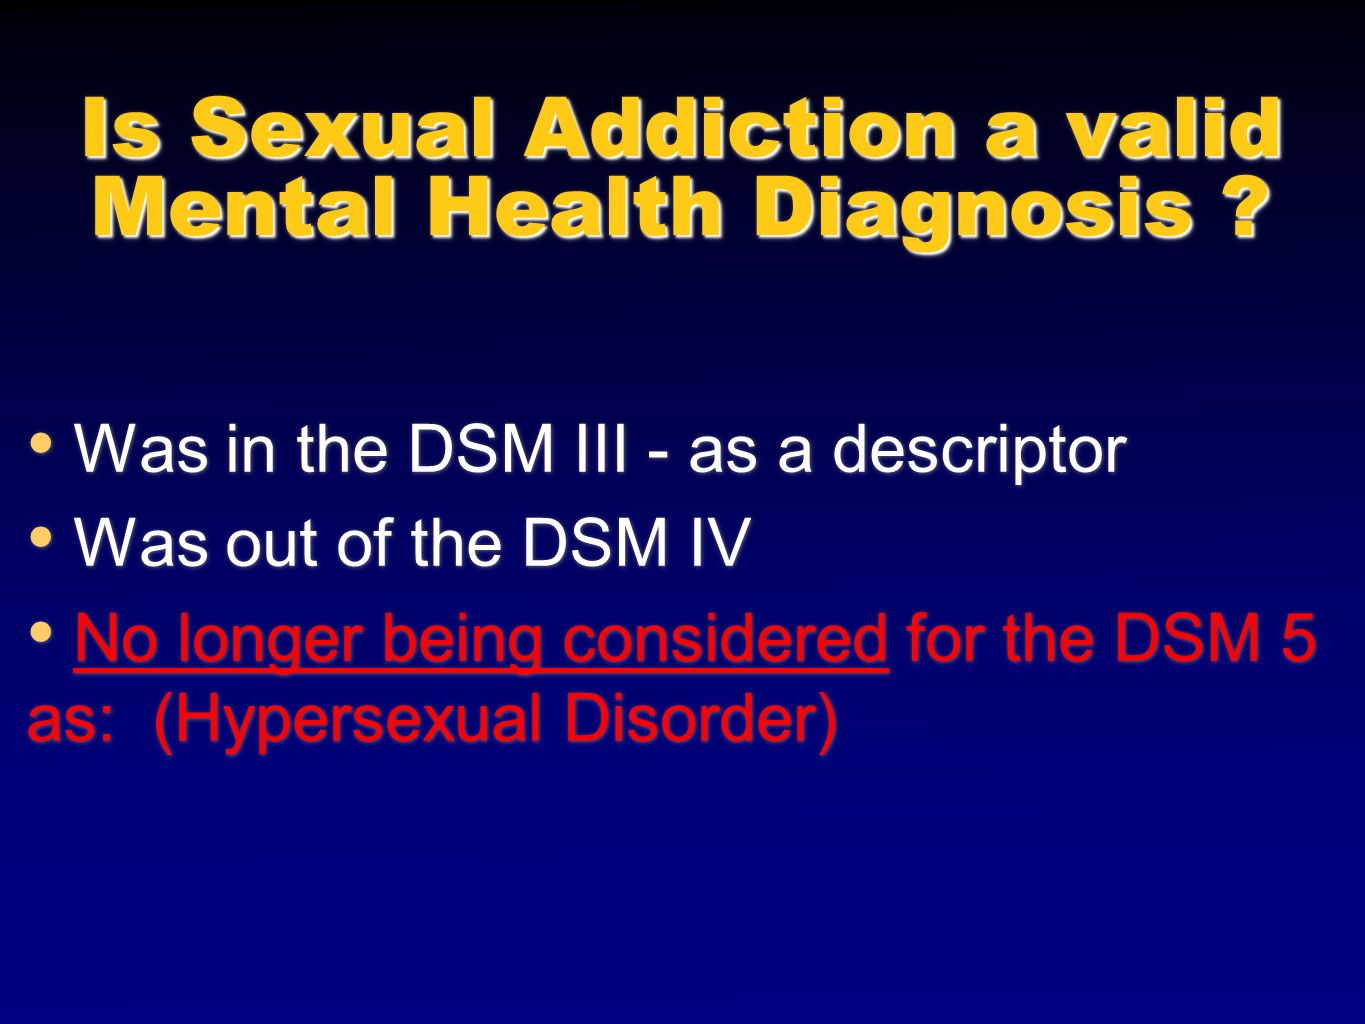 Is Sexual Addiction a valid Mental Health Diagnosis